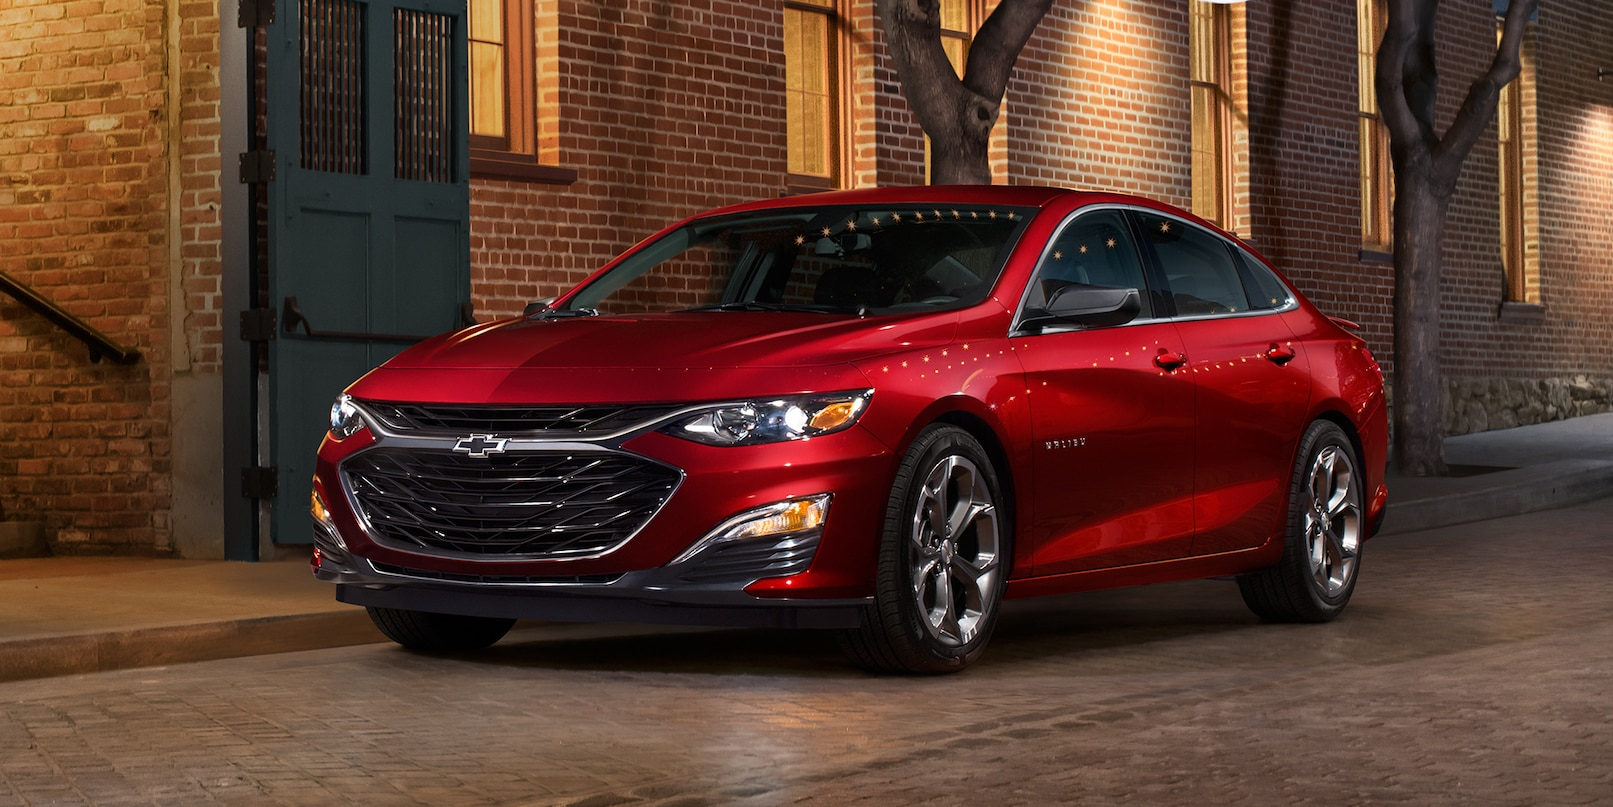 2019 Chevrolet Malibu Leasing near Fairfax, VA